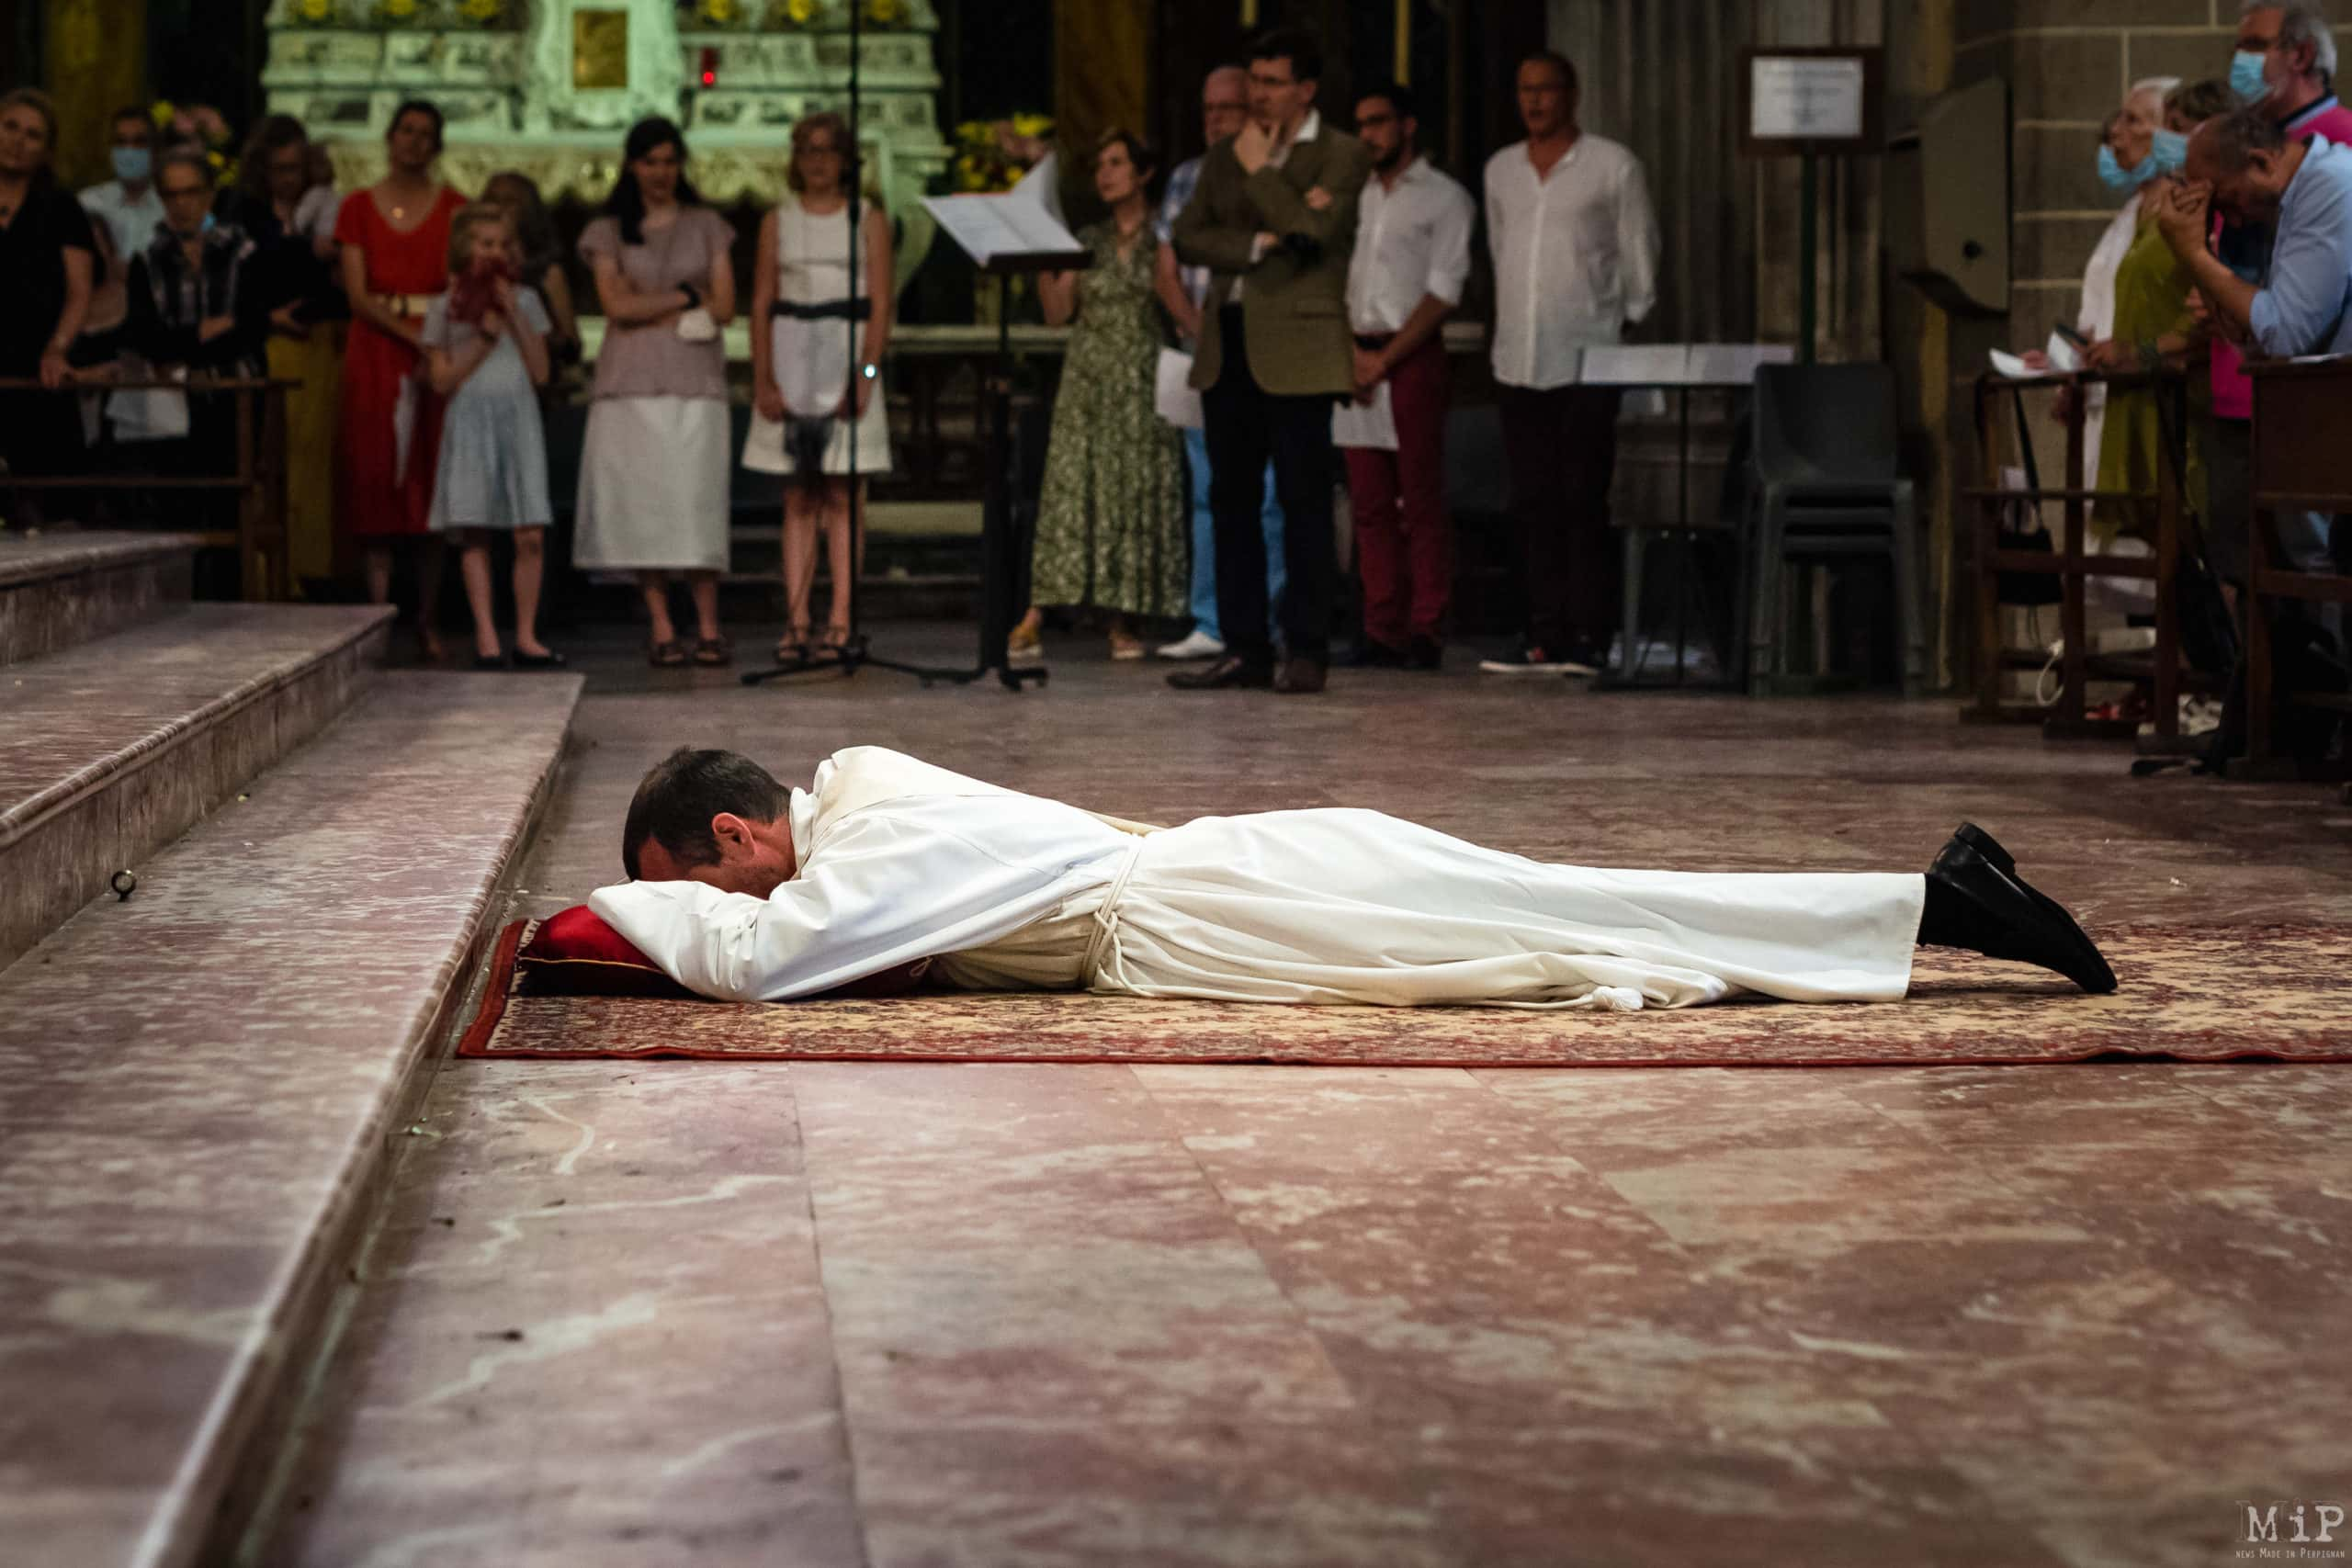 France, Perpignan, 2021-06-27. After 7 years spent in the seminary, Abbe Damien de Ricard was consecrated by no less than three bishops. Monsignor Norbert Turini, bishop of the diocese of Perpignan-Elne, was accompanied in this ceremony by Monsignor David Macaire, archbishop of Saint-Pierre and Fort-de-France in Martinique and Monsignor Raymond Centene, bishop of Vannes since 2005. In the diocese of Perpignan-Elne, there had not been an ordination for 8 years. June is traditionally the month of ordinations in the Catholic Church. The month when former seminarians become priests in a highly codified ceremony. In 2021, 130 ordinands will become priests on Sunday 27 June, the closest to 29 June, the feast of St Peter and St Paul, two of the pillars of the Catholic tradition. Photograph by Arnaud Le Vu / Hans Lucas.France, Perpignan, 2021-06-27. Apres 7 ans passes au seminaire, l abbe Damien de Ricard, a ete consacre par pas moins de 3 eveques. Monseigneur Norbert Turini, eveque du diocese de Perpignan-Elne, etait accompagne dans cette ceremonie par Monseigneur DavidMacaire, archeveque de Saint-Pierre et Fort-de-France en Martinique et Monseigneur RaymondCentene eveque de Vannes depuis 2005. Dans le diocese de Perpignan-Elne, il n y avait pas eu d ordination depuis 8 ans. Le mois de juin est traditionnellement celui des ordinations dans l Eglise catholique. Le mois ou les anciens seminaristes deviennent pretre lors d une ceremonie fort codifie. En 2021, ils sont 130 ordinants a devenir pretre en ce dimanche 27 juin, le plus proche du 29 juin, fete de Saint-Pierre et Saint-Paul, deux des apotres piliers de la tradition catholique. Photographie de Arnaud Le Vu / Hans Lucas.